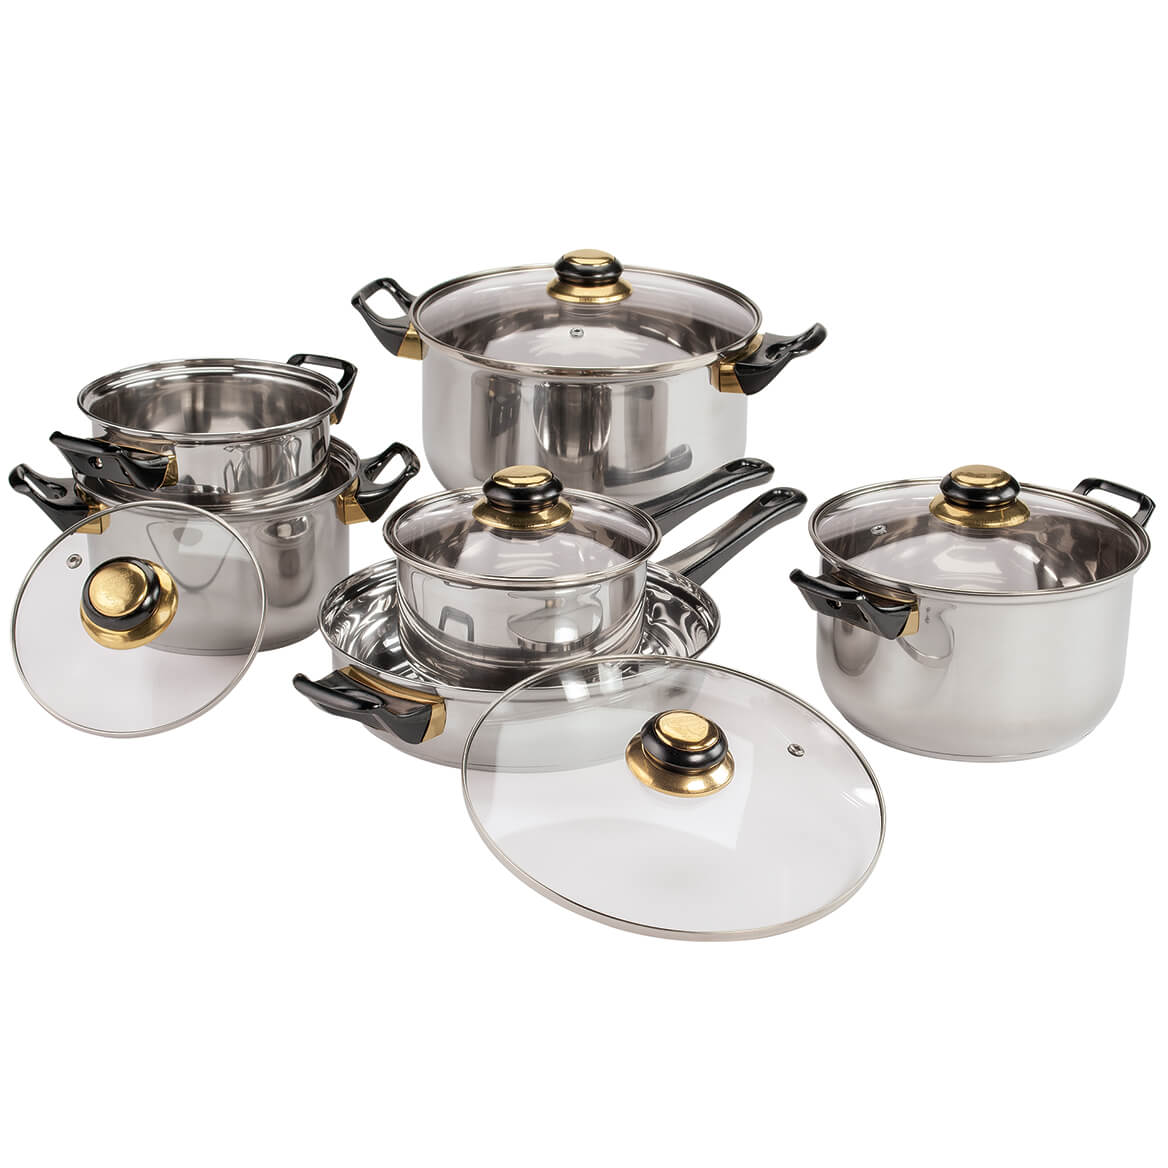 Deluxe 12 Pc. Stainless Steel Cookware Set-369767